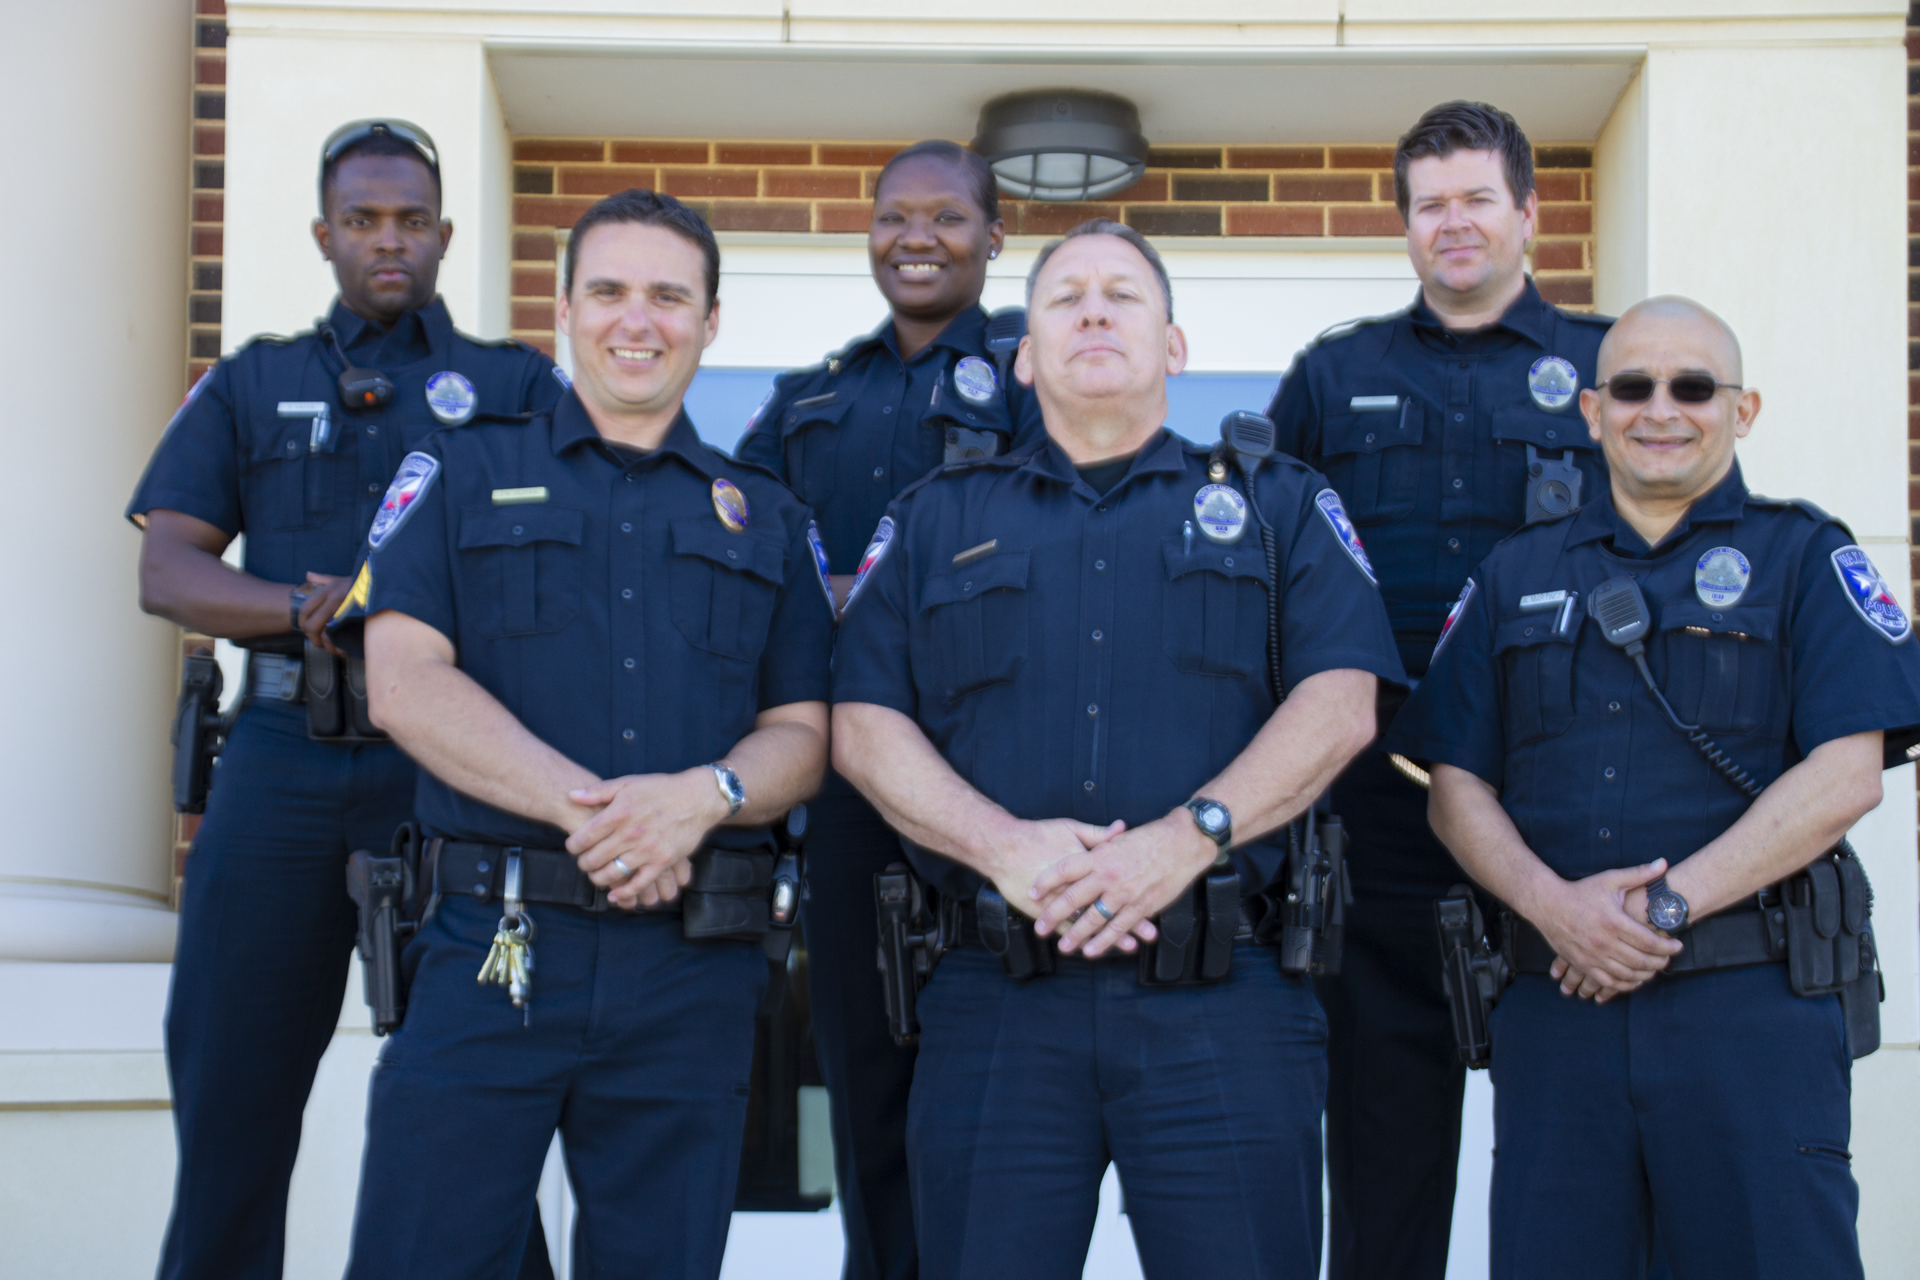 6 officers in uniform